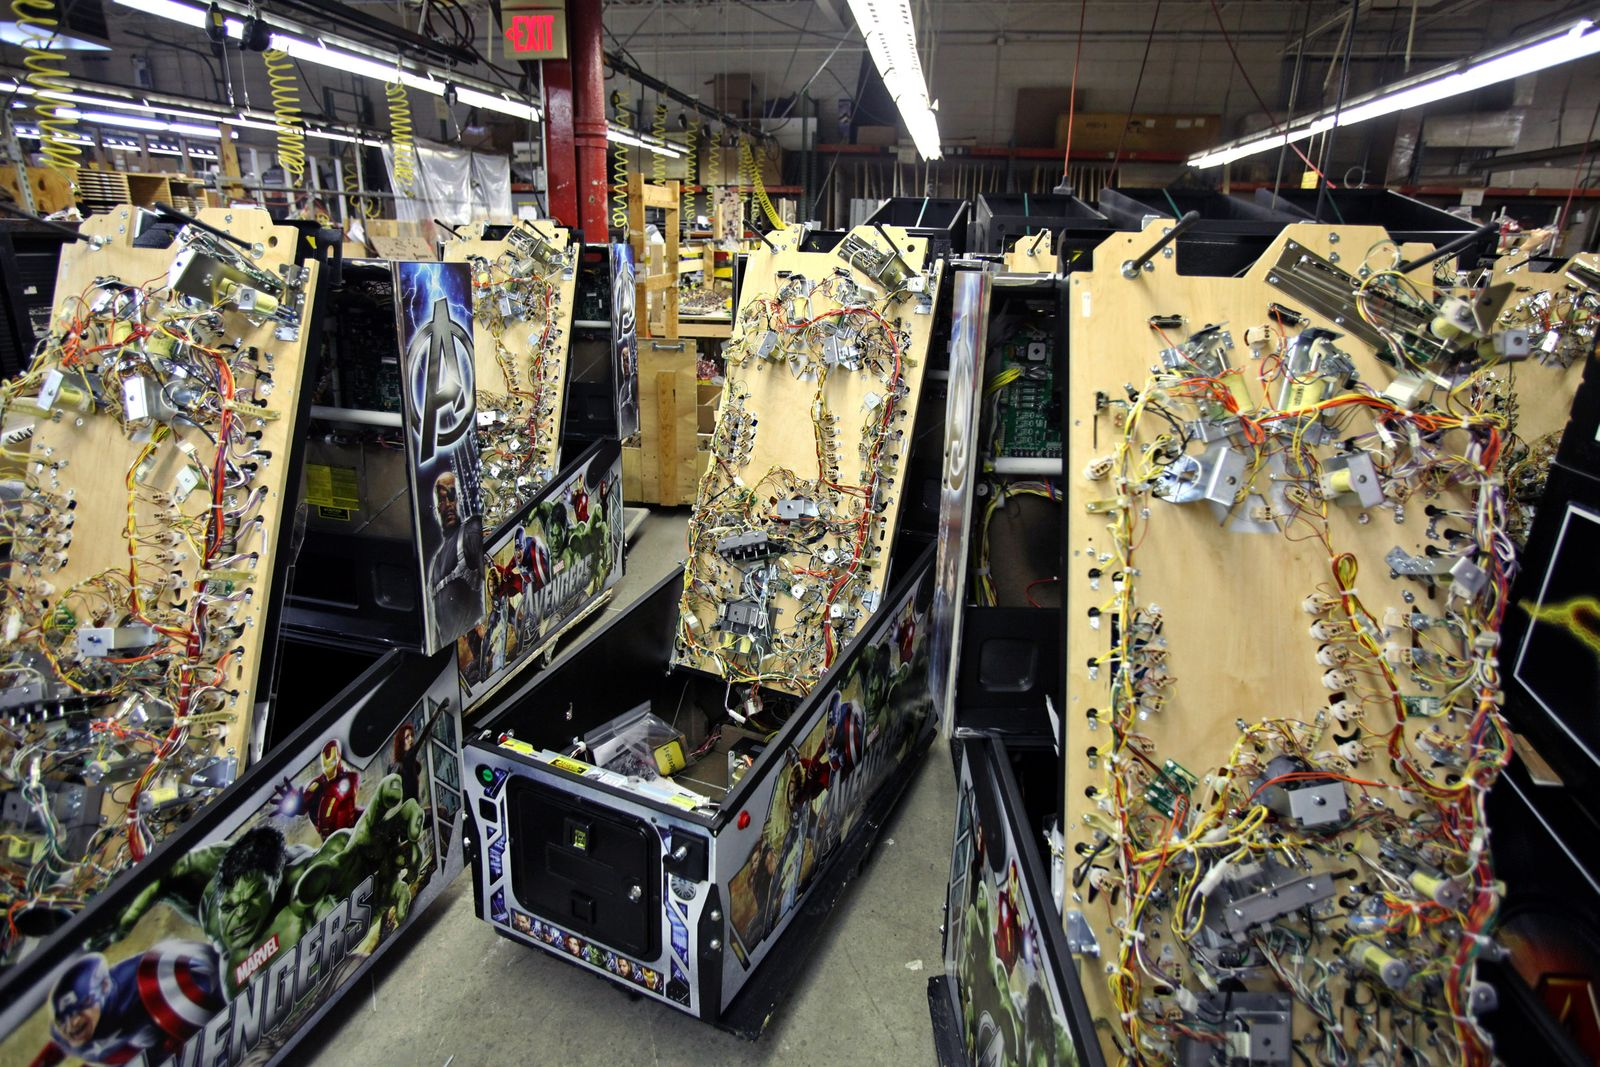 Operations Inside Stern Pinball Inc.'s Manufacturing Facility Ahead Of Durable Goods Data